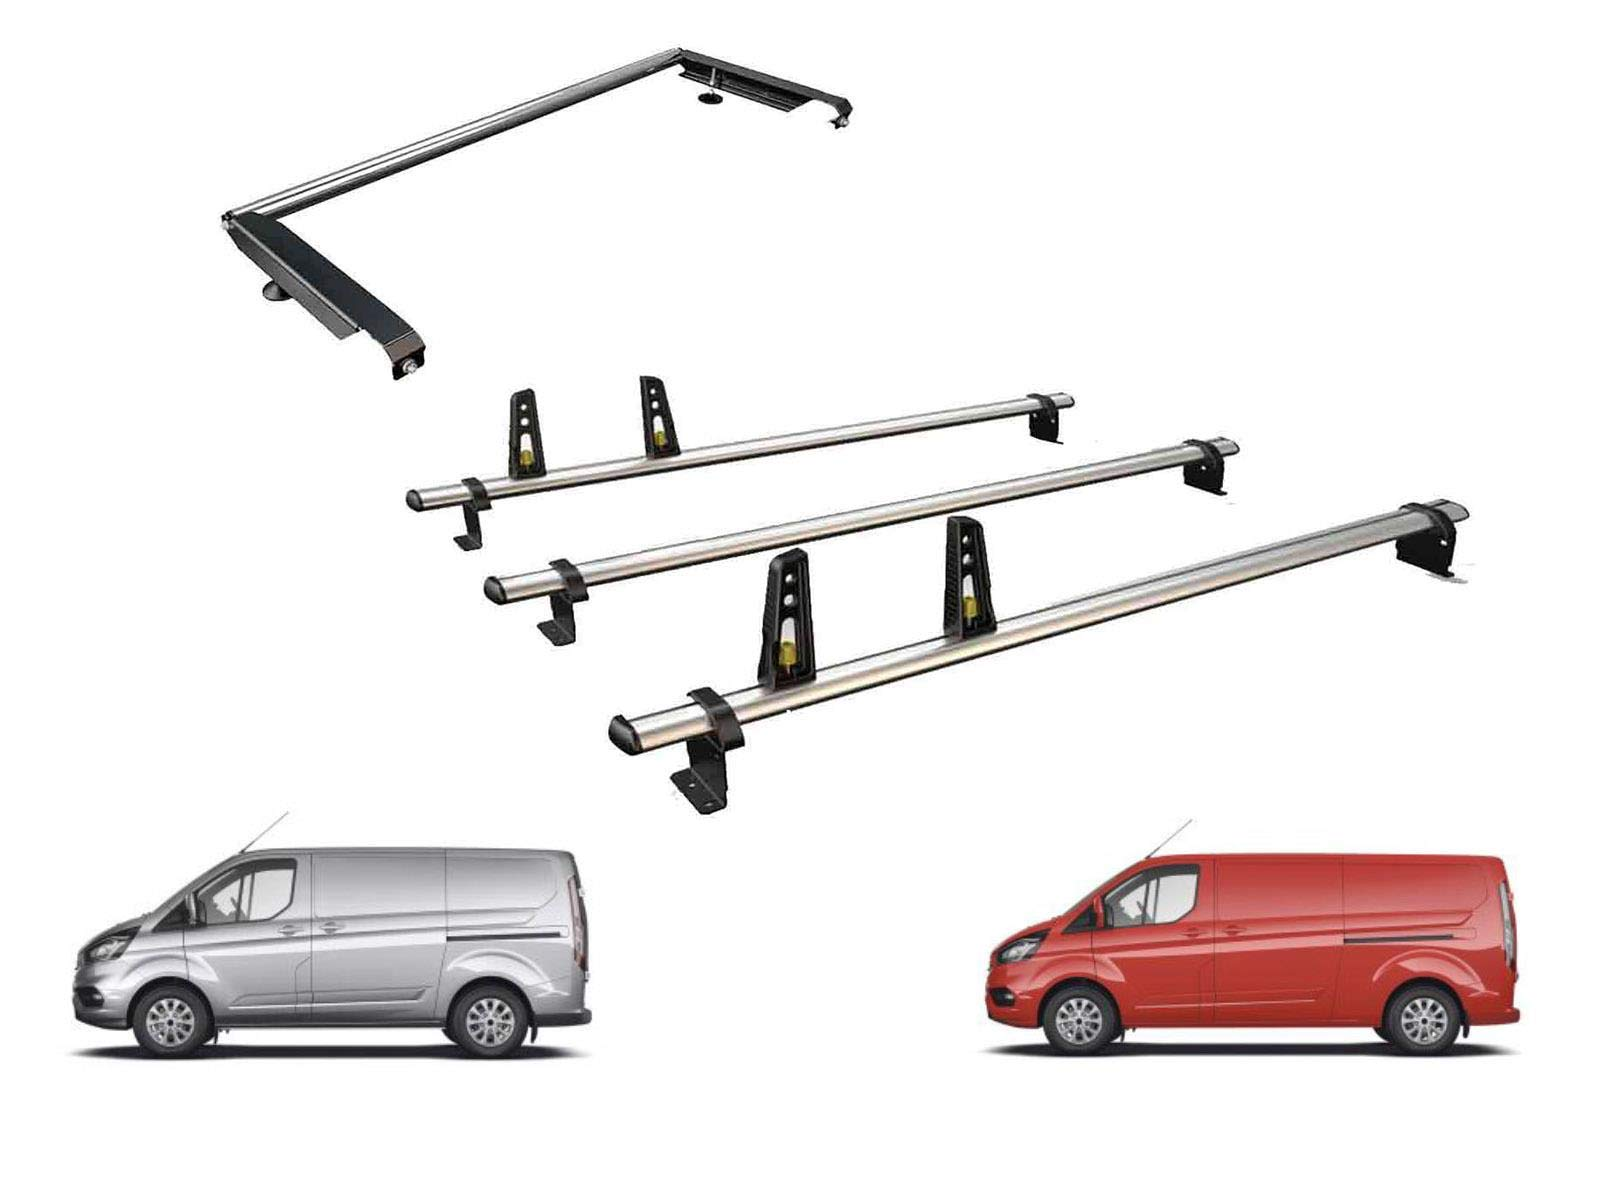 01-14 Rhino Delta Bar Rear Steel Ladder Roller System for Vauxhall Vivaro High Roof, LWB